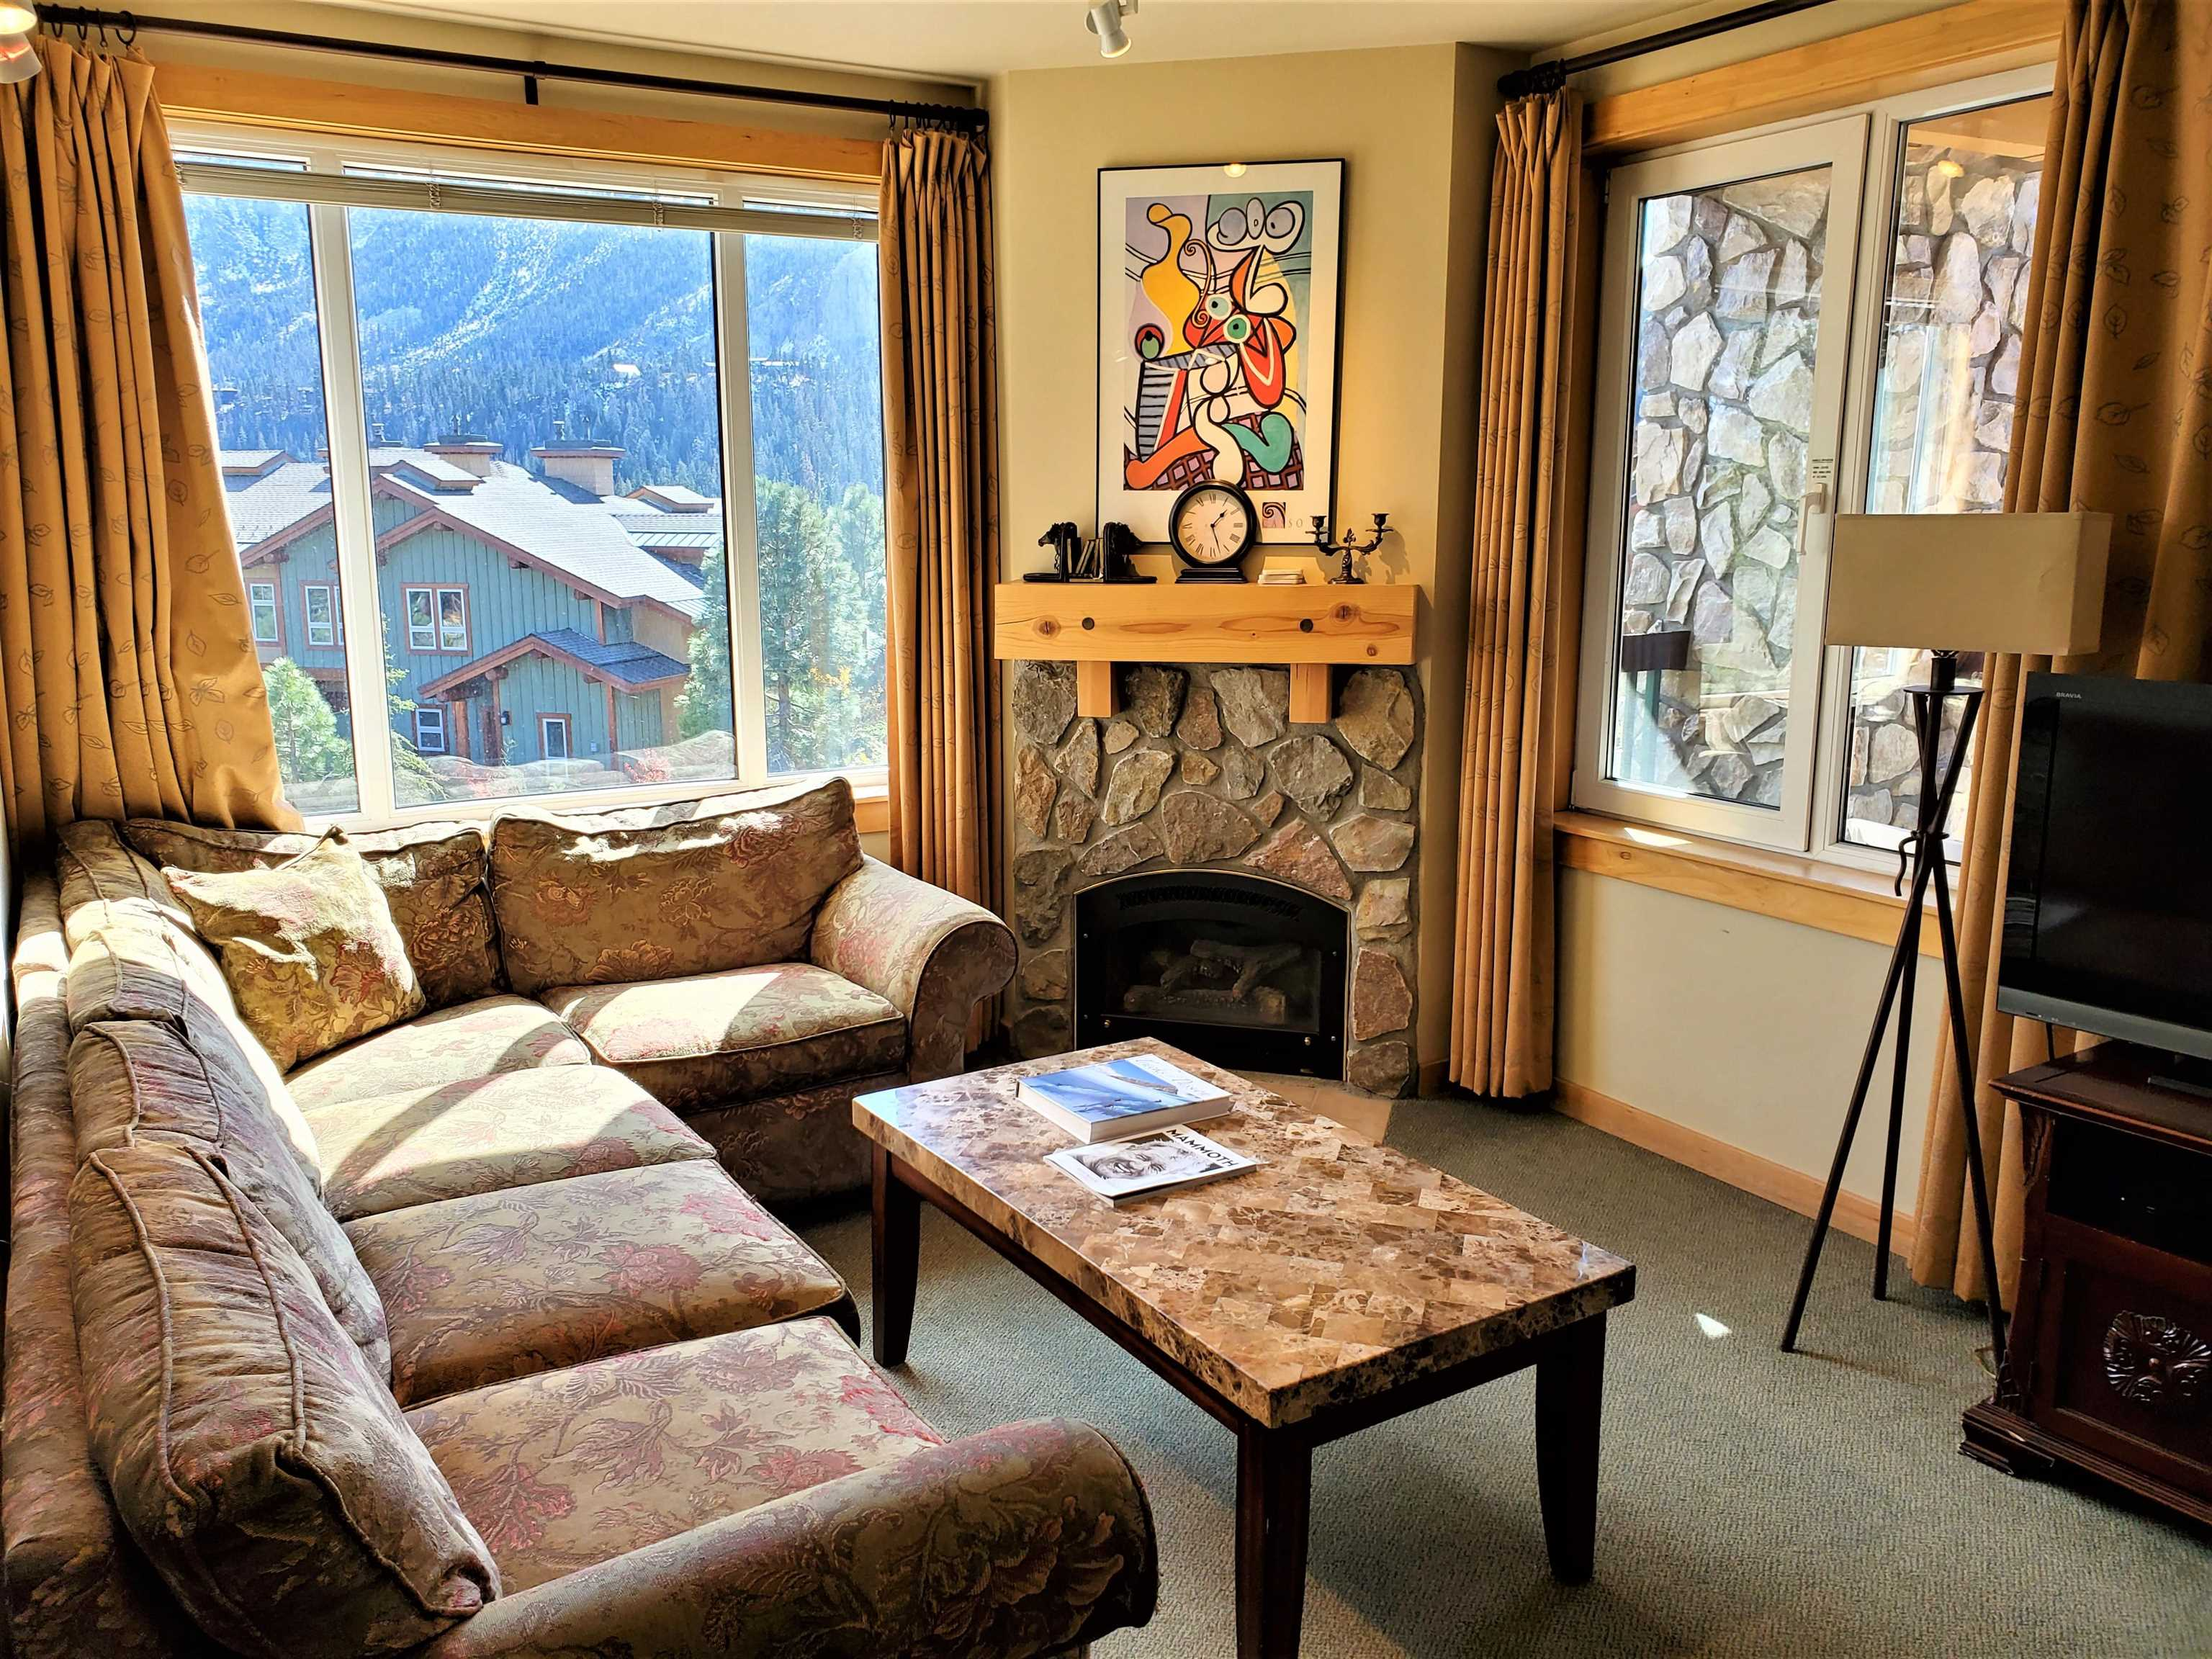 Located slope side at the base of Eagle Run, this condo is truly ski in/out. Two bedroom, two bath, corner unit with incredible views of Mammoth Rock, the Sherwins and the crest of the Sierra. Heated underground garage, ski lockers, year round heated pool, 3 jacuzzis, gym, coffee shop, ski rental shop, business center, elevators, laundry plus more! Leave your car in the garage and walk out the door to Chair 15 and Eagle Lodge to access Mammoth Mountain! Take the free town shuttle anywhere in Mammoth, no need to drive anywhere. HOA fee includes ALL utility expenses including cable TV/WIFI, water, propane & electric. No surprise heating or utility bills. Nightly rentals permitted. Contact listing agent for rental history.